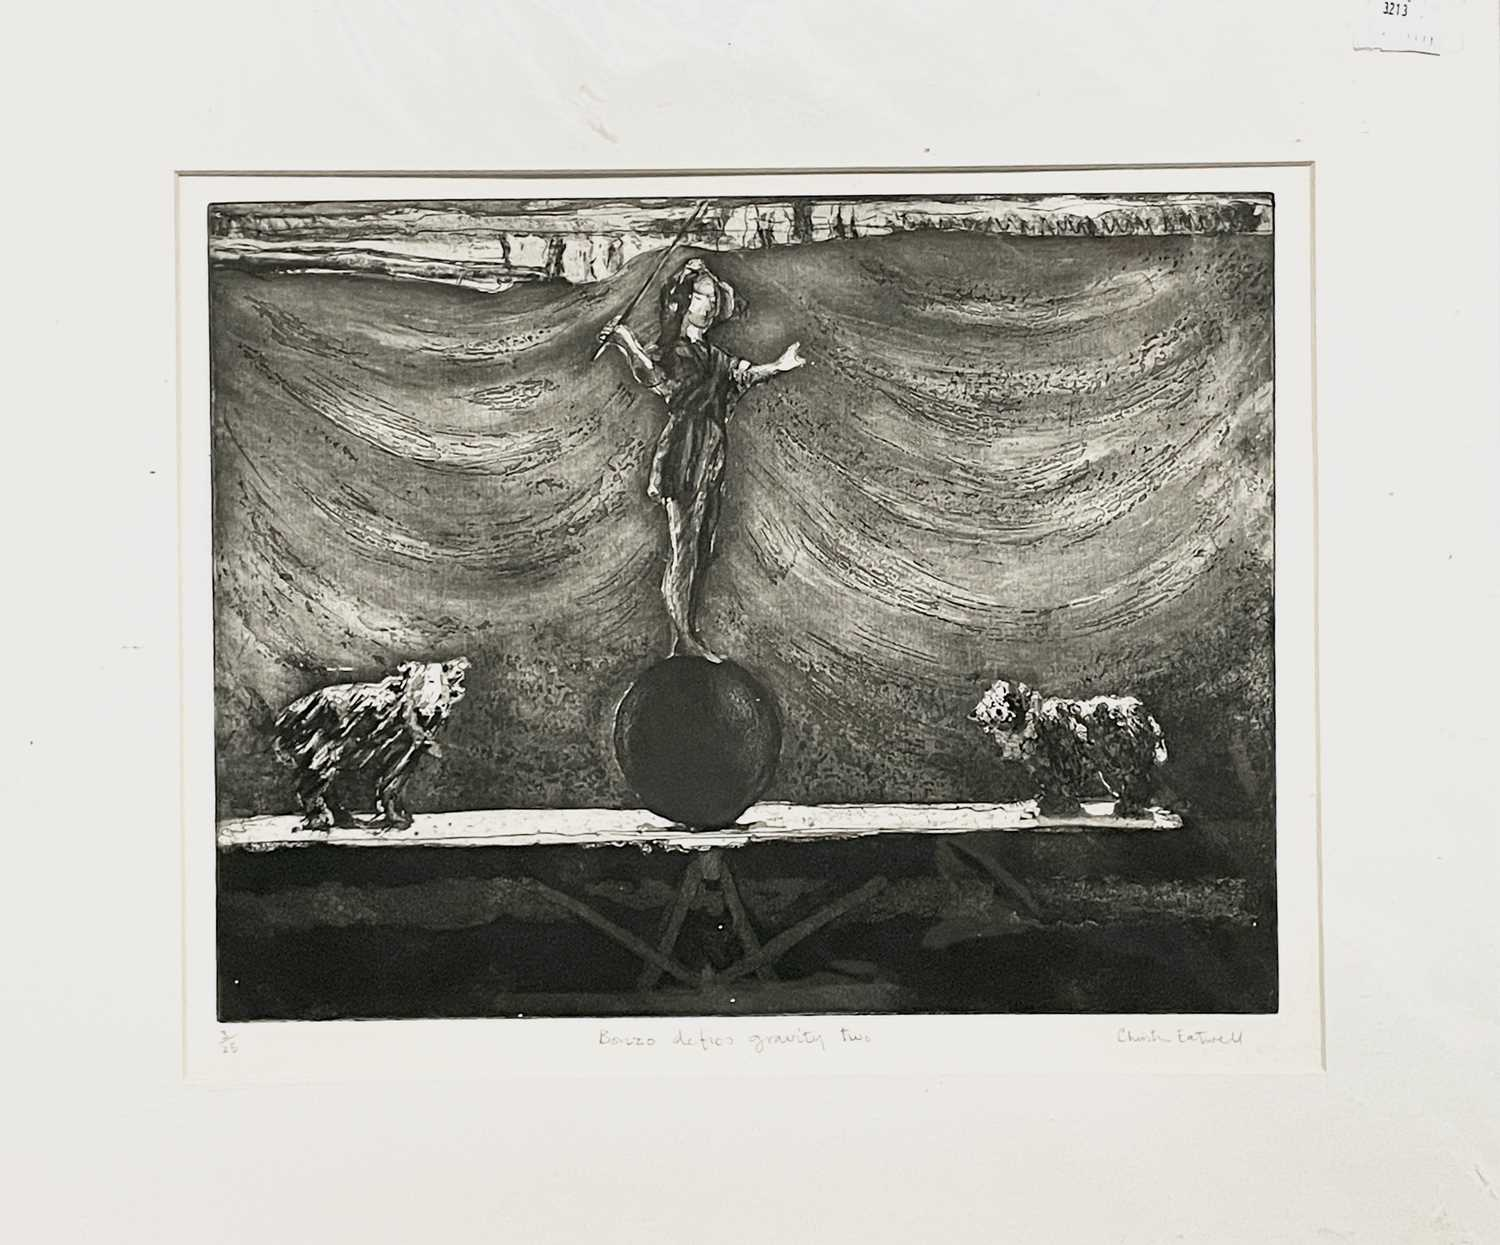 HEADLEY Cornish Mystery VIColoured etching Signed and inscribed 17.5 x 18cmTogether with ' - Image 2 of 9